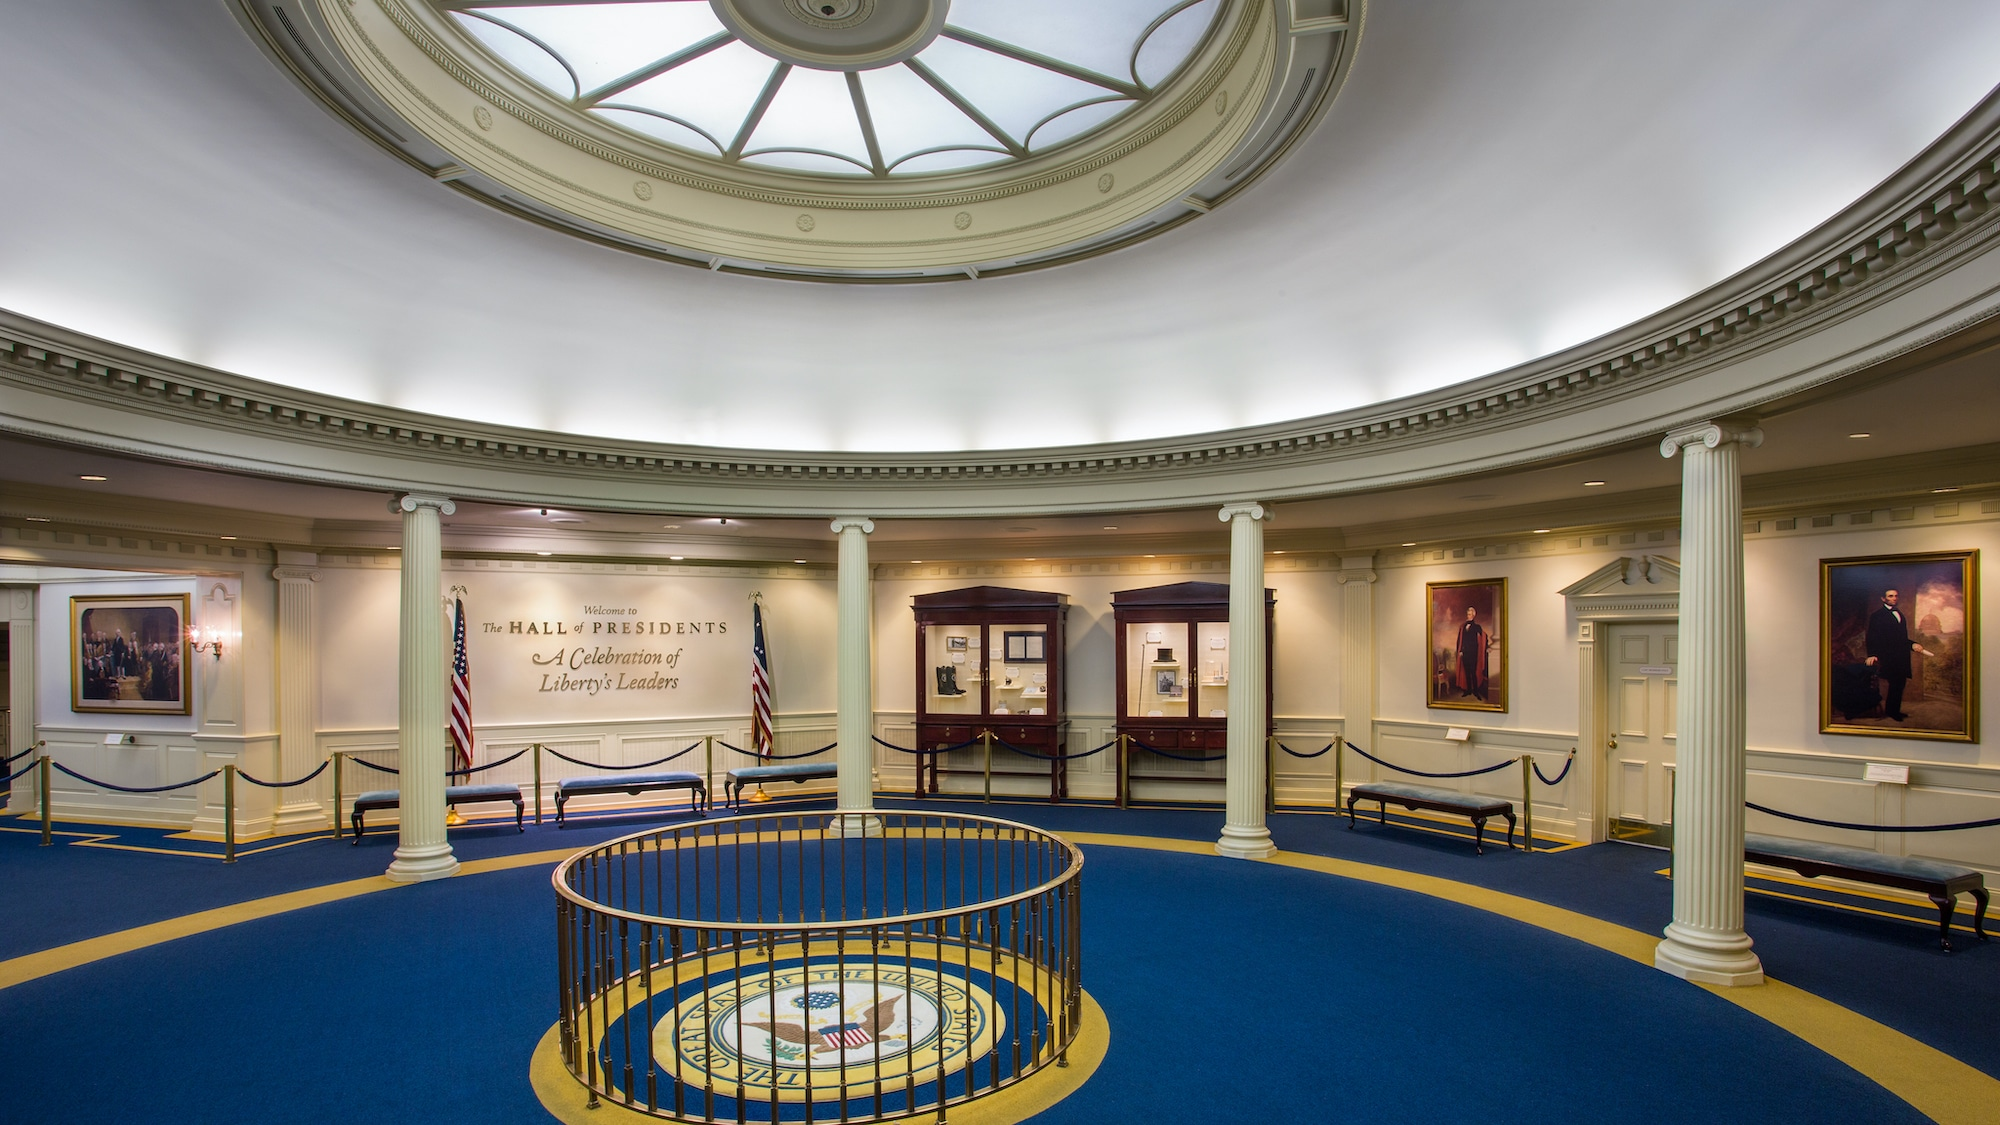 Image of The Hall of Presidents interior.